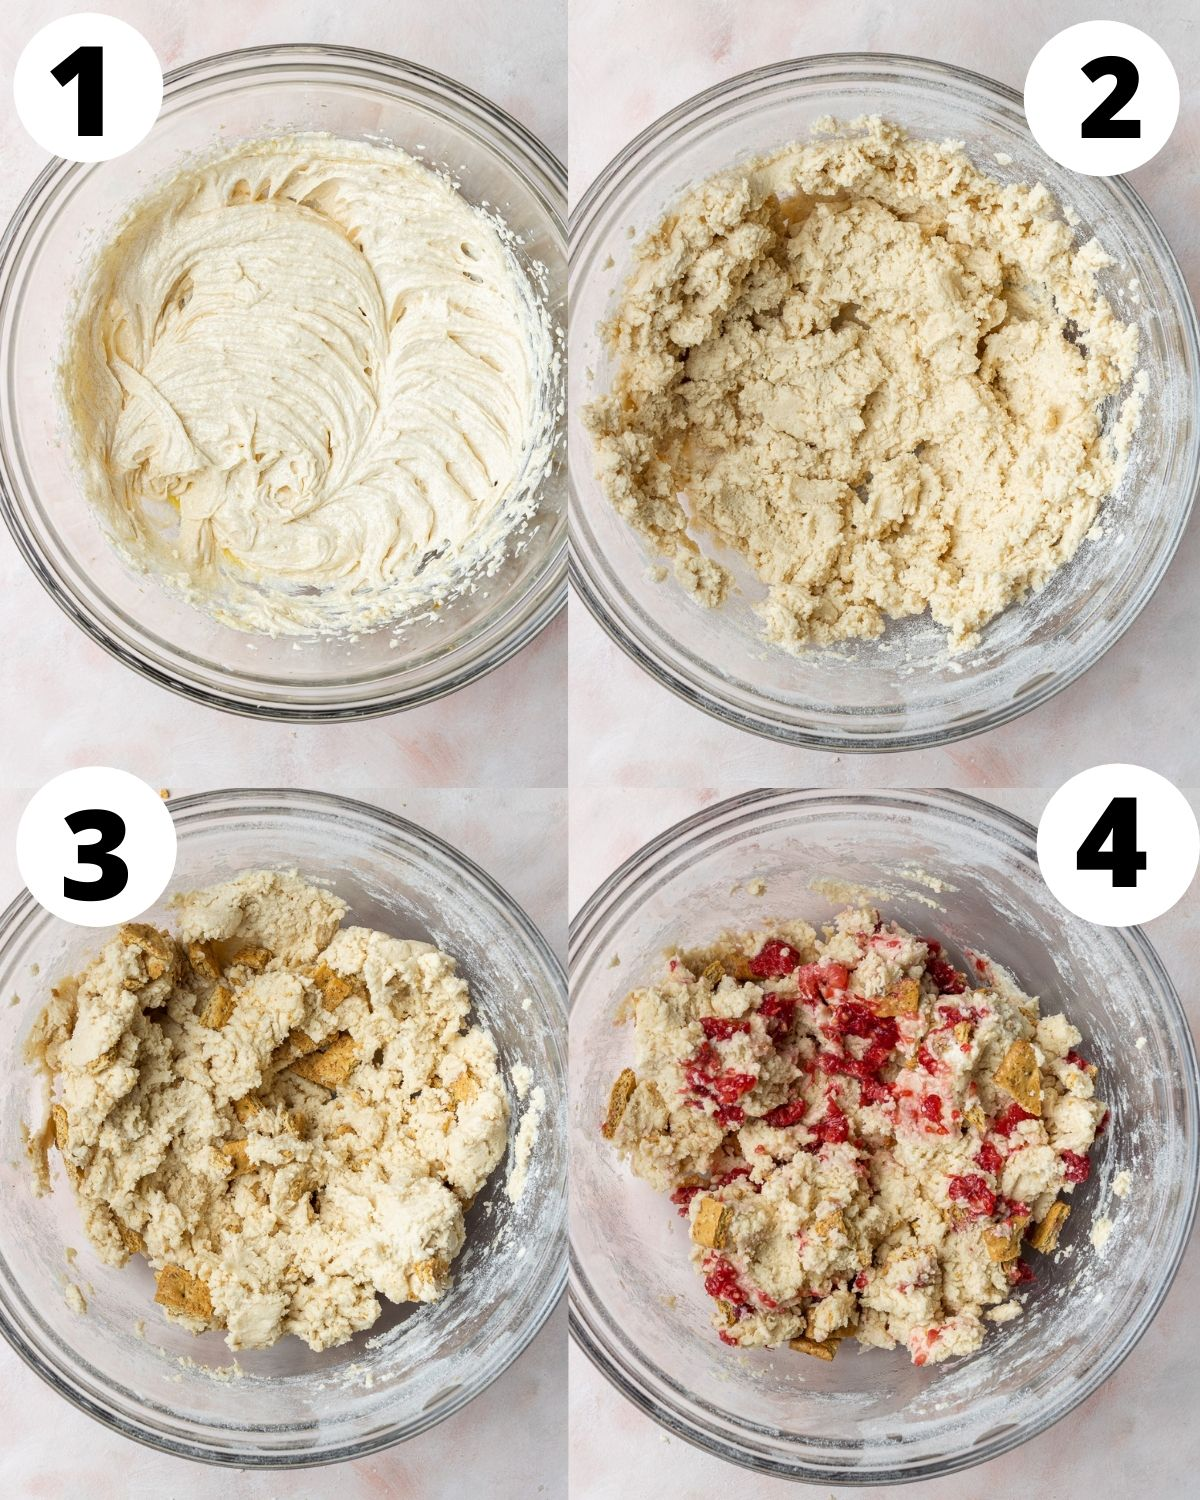 Step by Step photos showing how to make raspberry cheesecake cookies